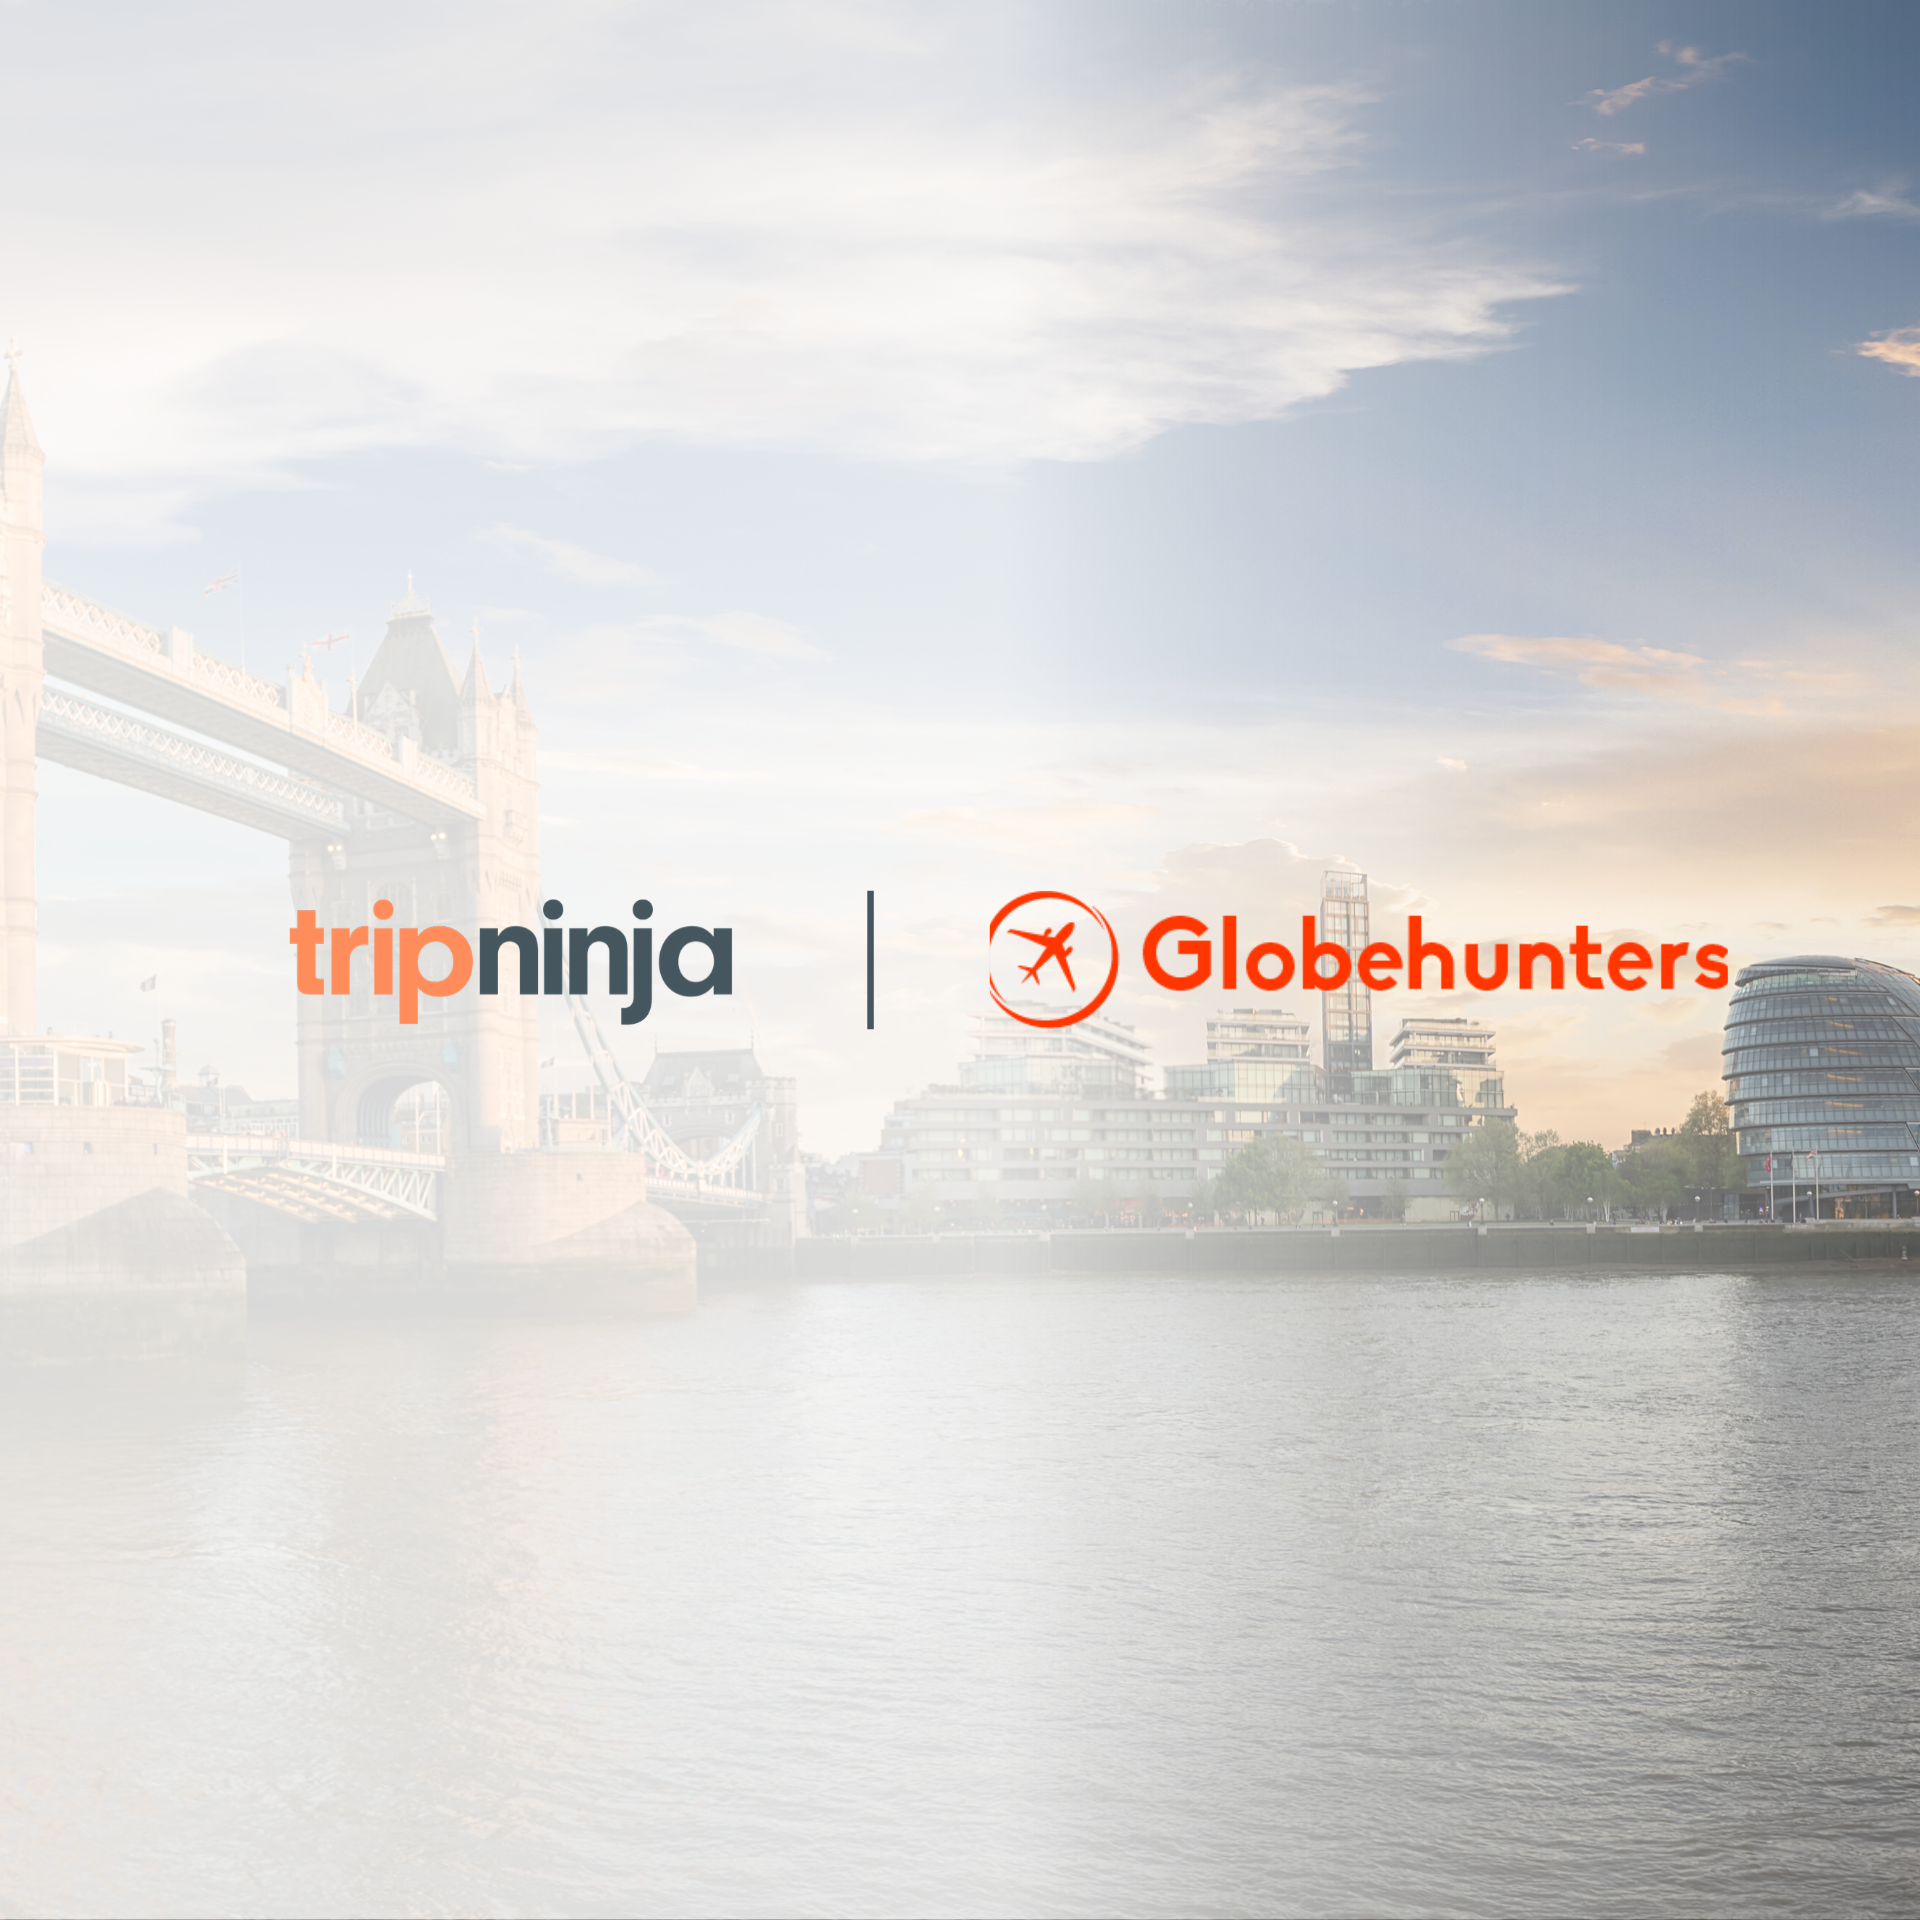 Trip Ninja and A1 Travel Deals Ltd. are excited to announce the integration of Trip Ninja's FareStruture technology with Globehunters.com, a subsidiary of A1 Travel Deals Ltd. serving the United Kingdom.